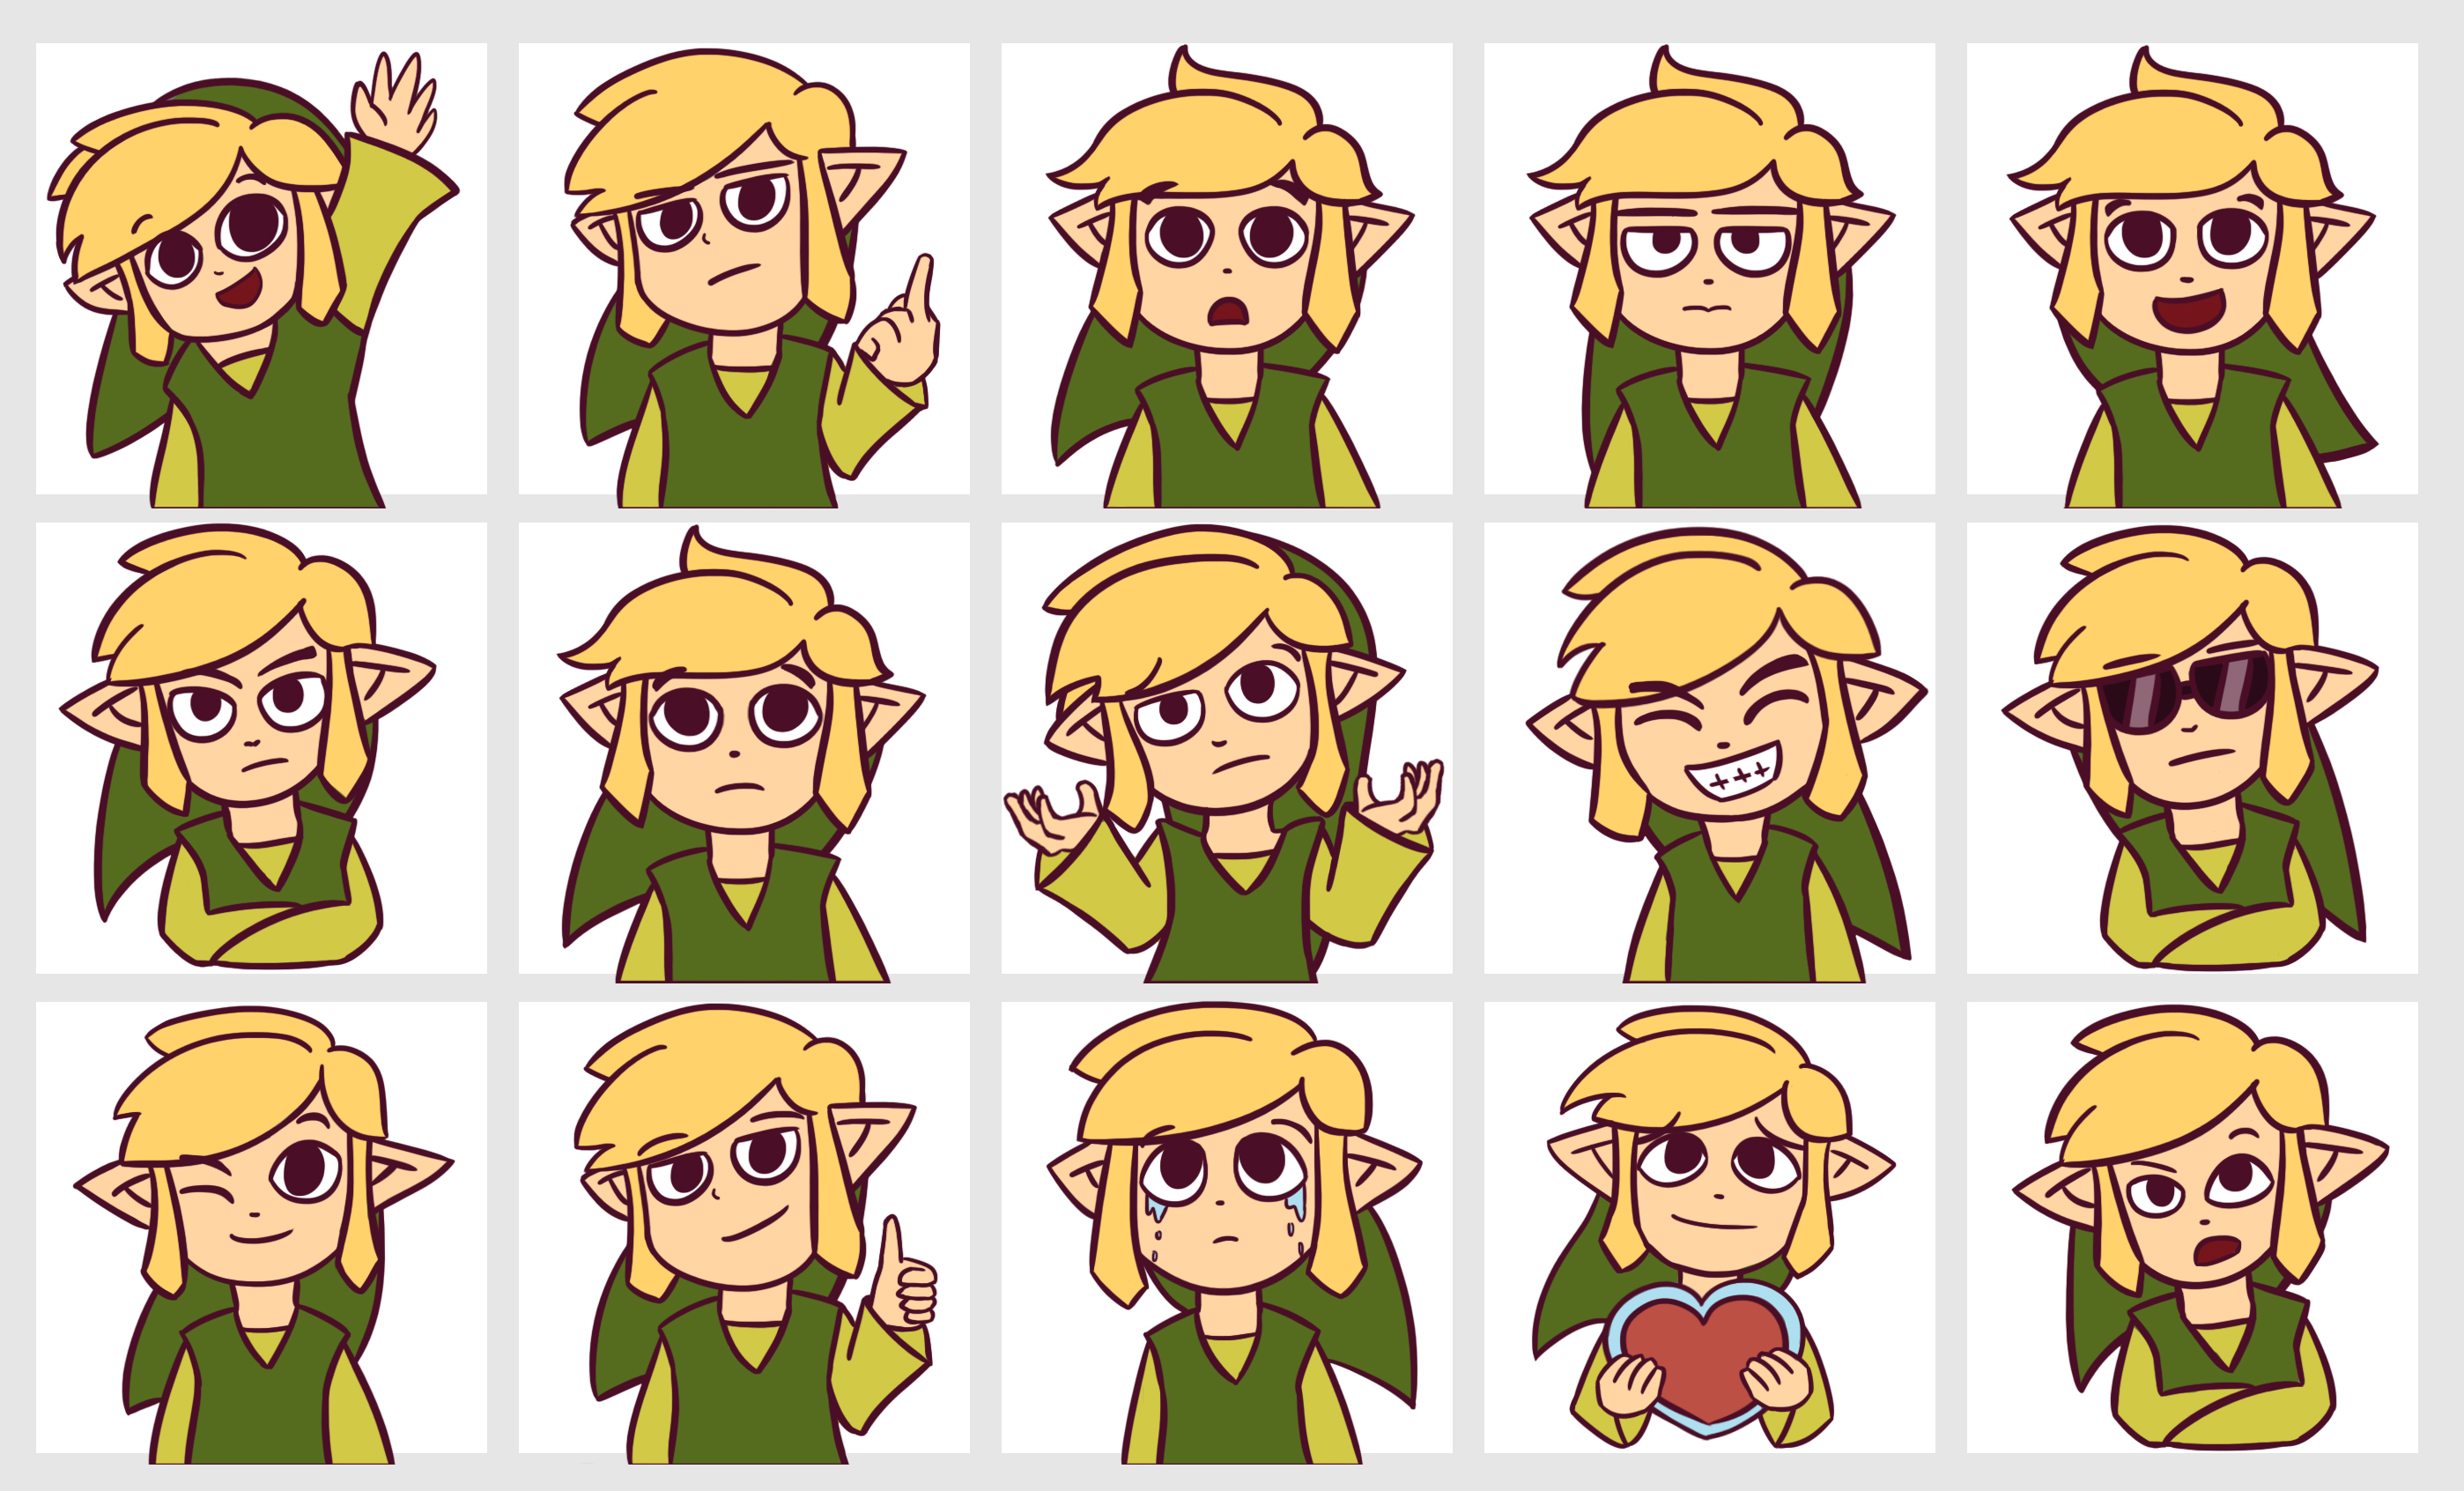 Toon Link Telegram Stickers by Chromel on DeviantArt